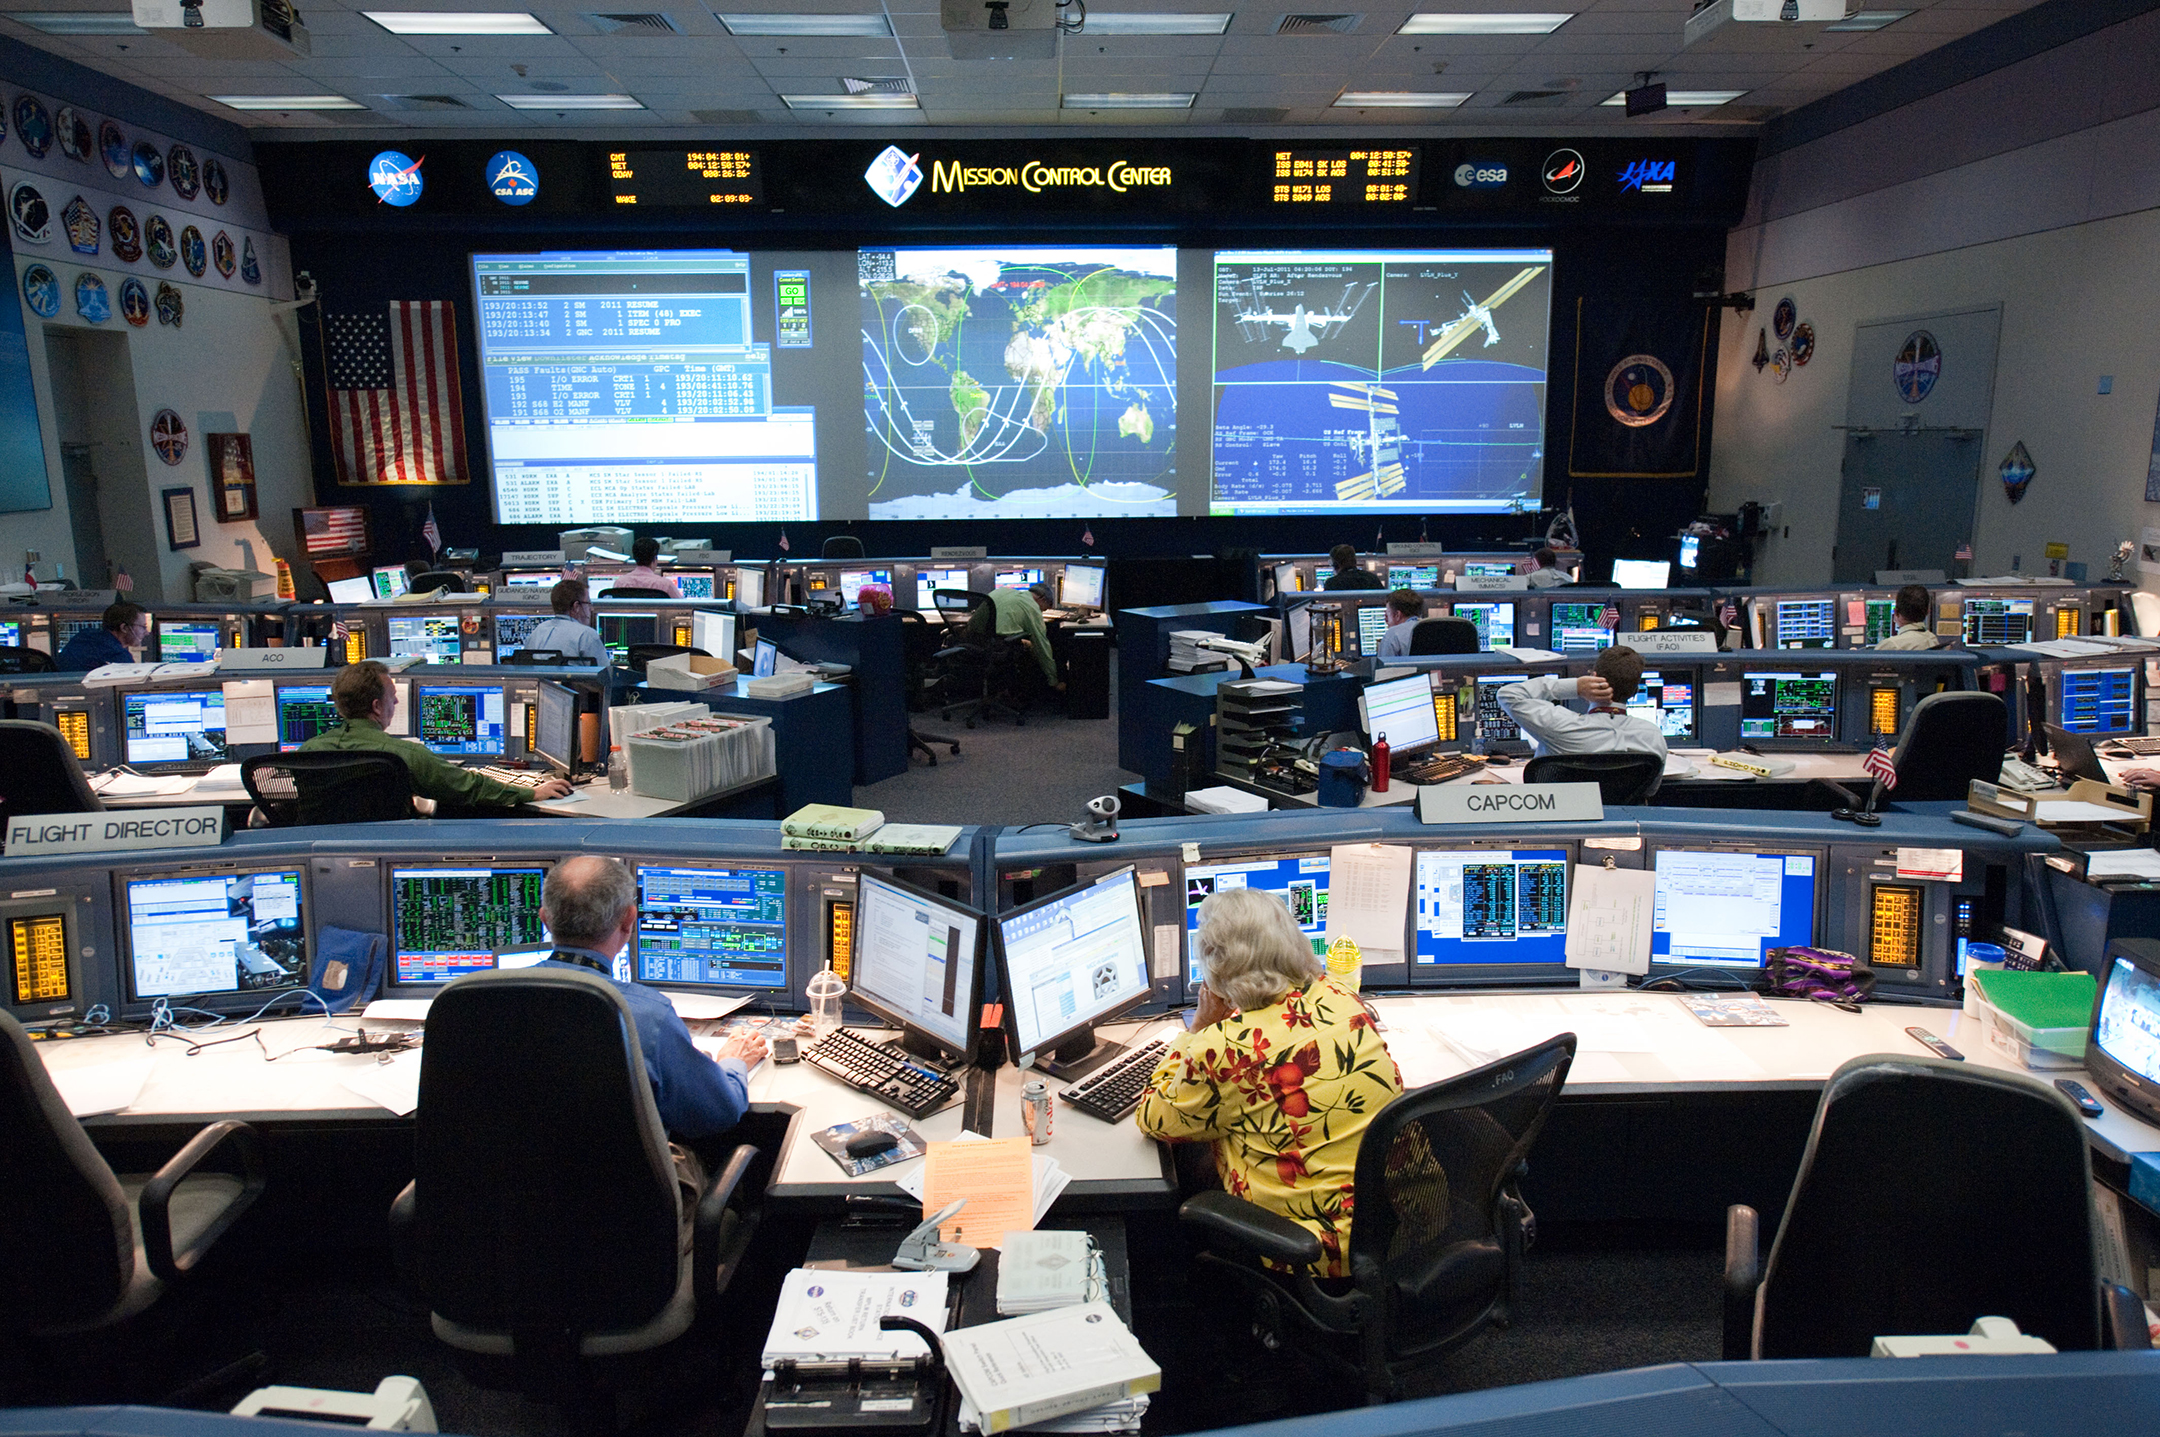 wide angle shot of nasa's mission control center, showing people sitting at computer terminals